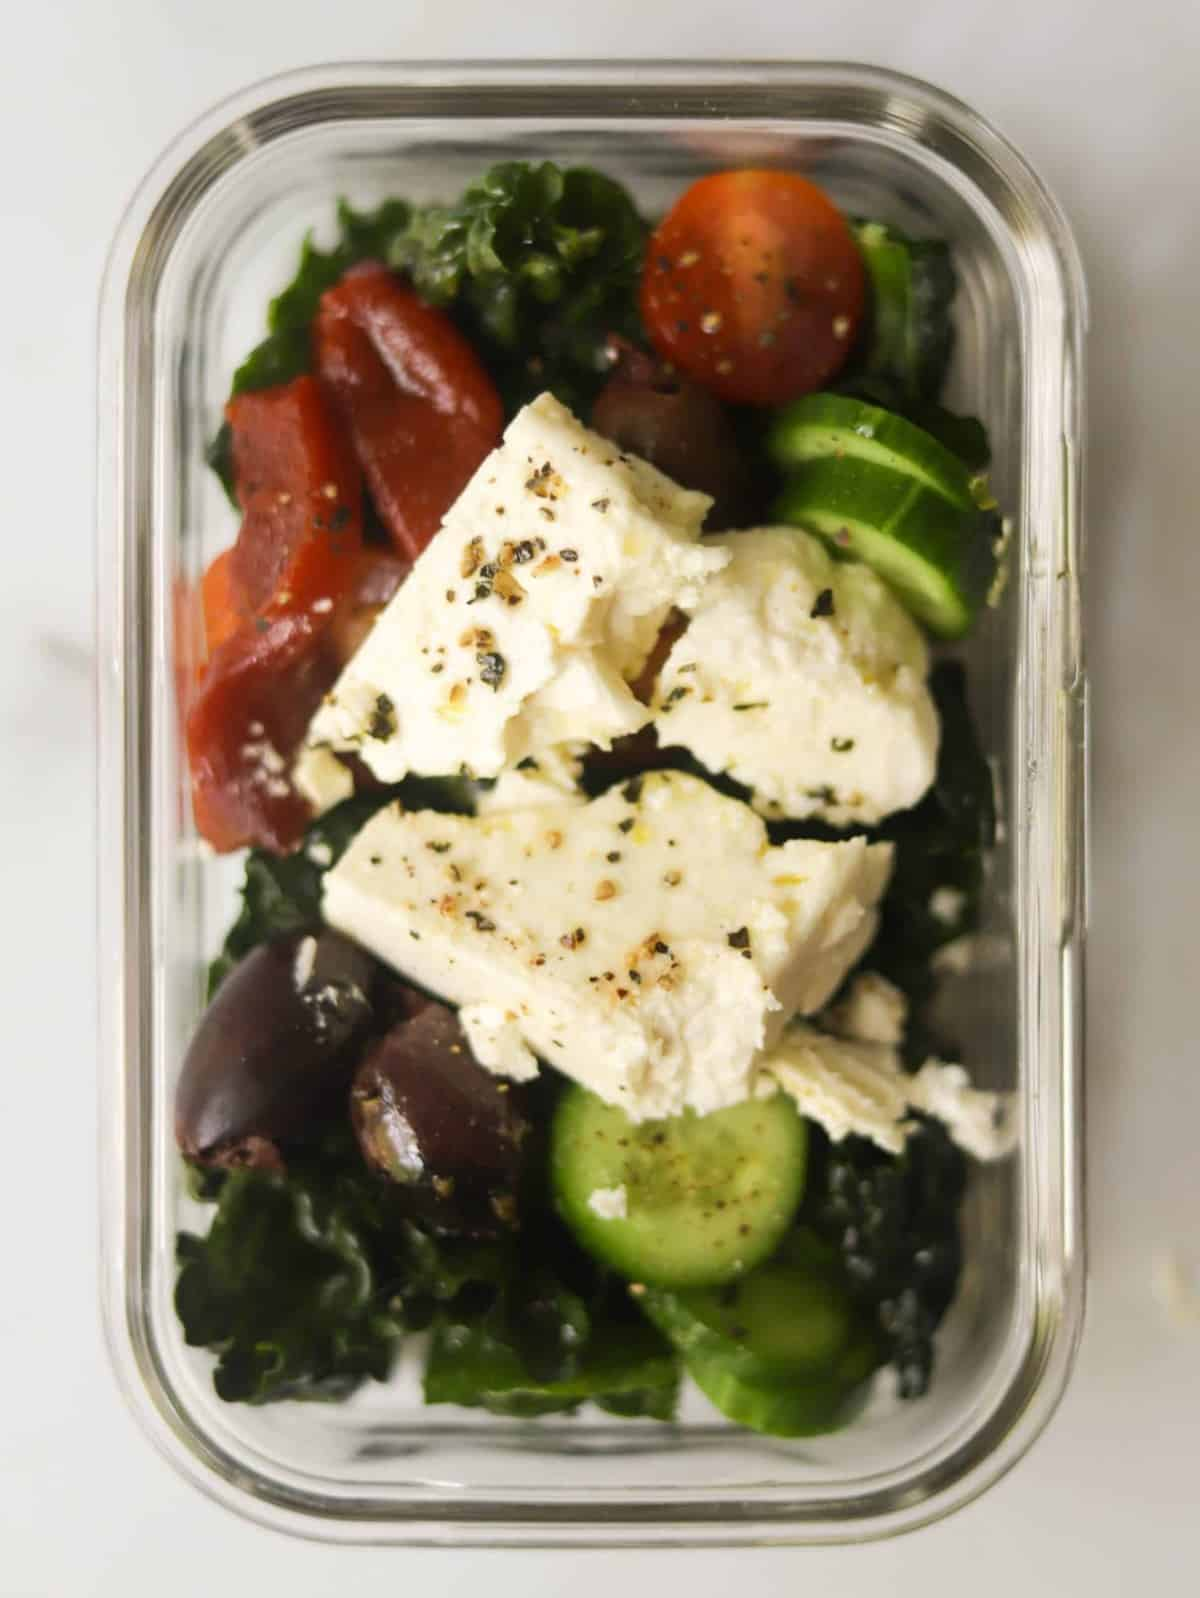 A meal prep container with kale salad.